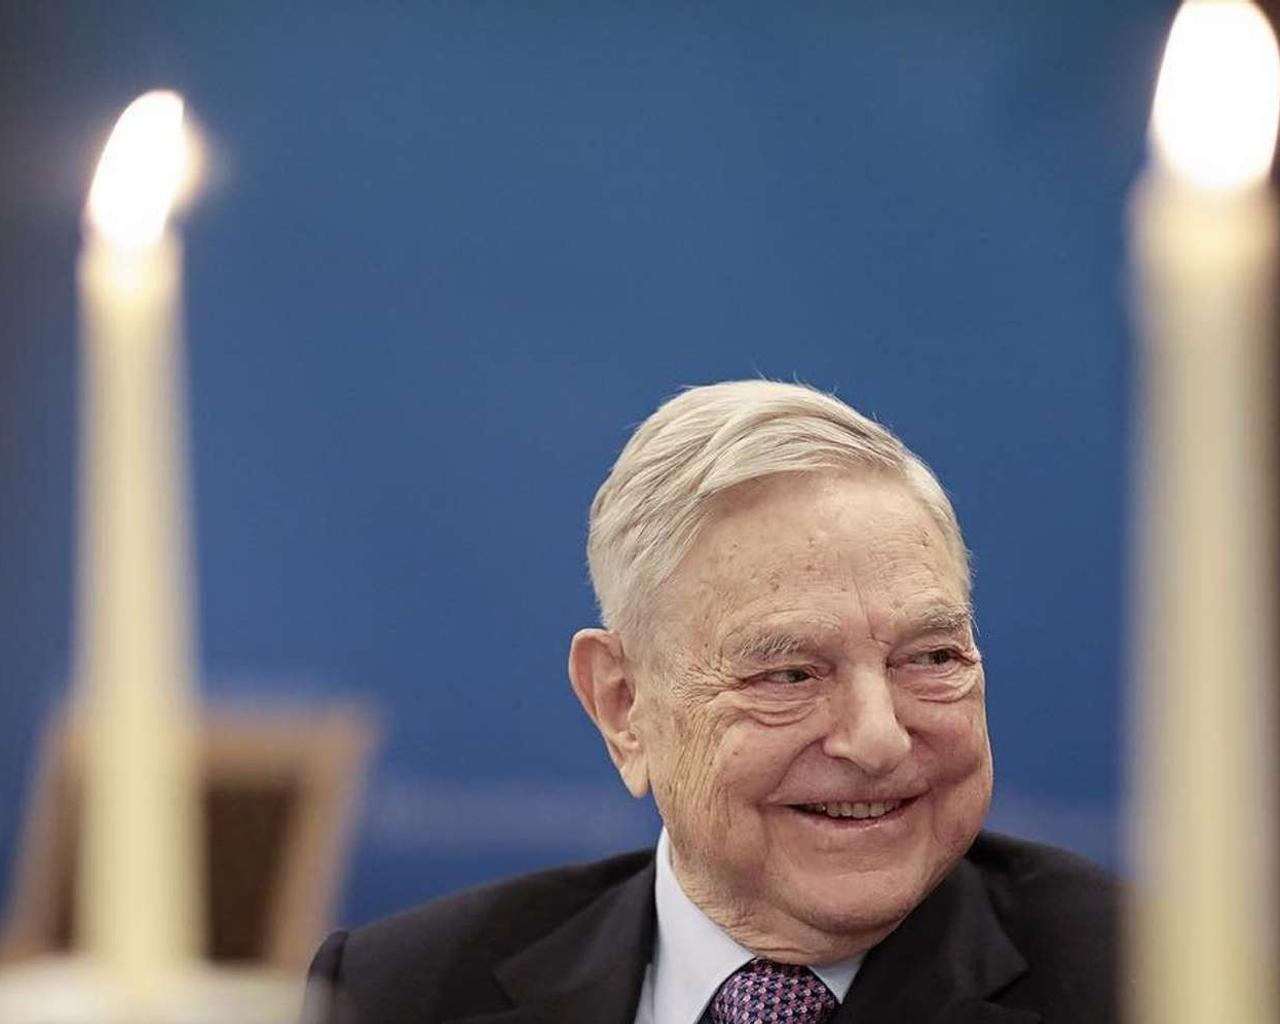 """""""Mark Zuckerberg Should Not Be Left to Control Facebook,"""" George Soros Says — Does He Have a Point?"""